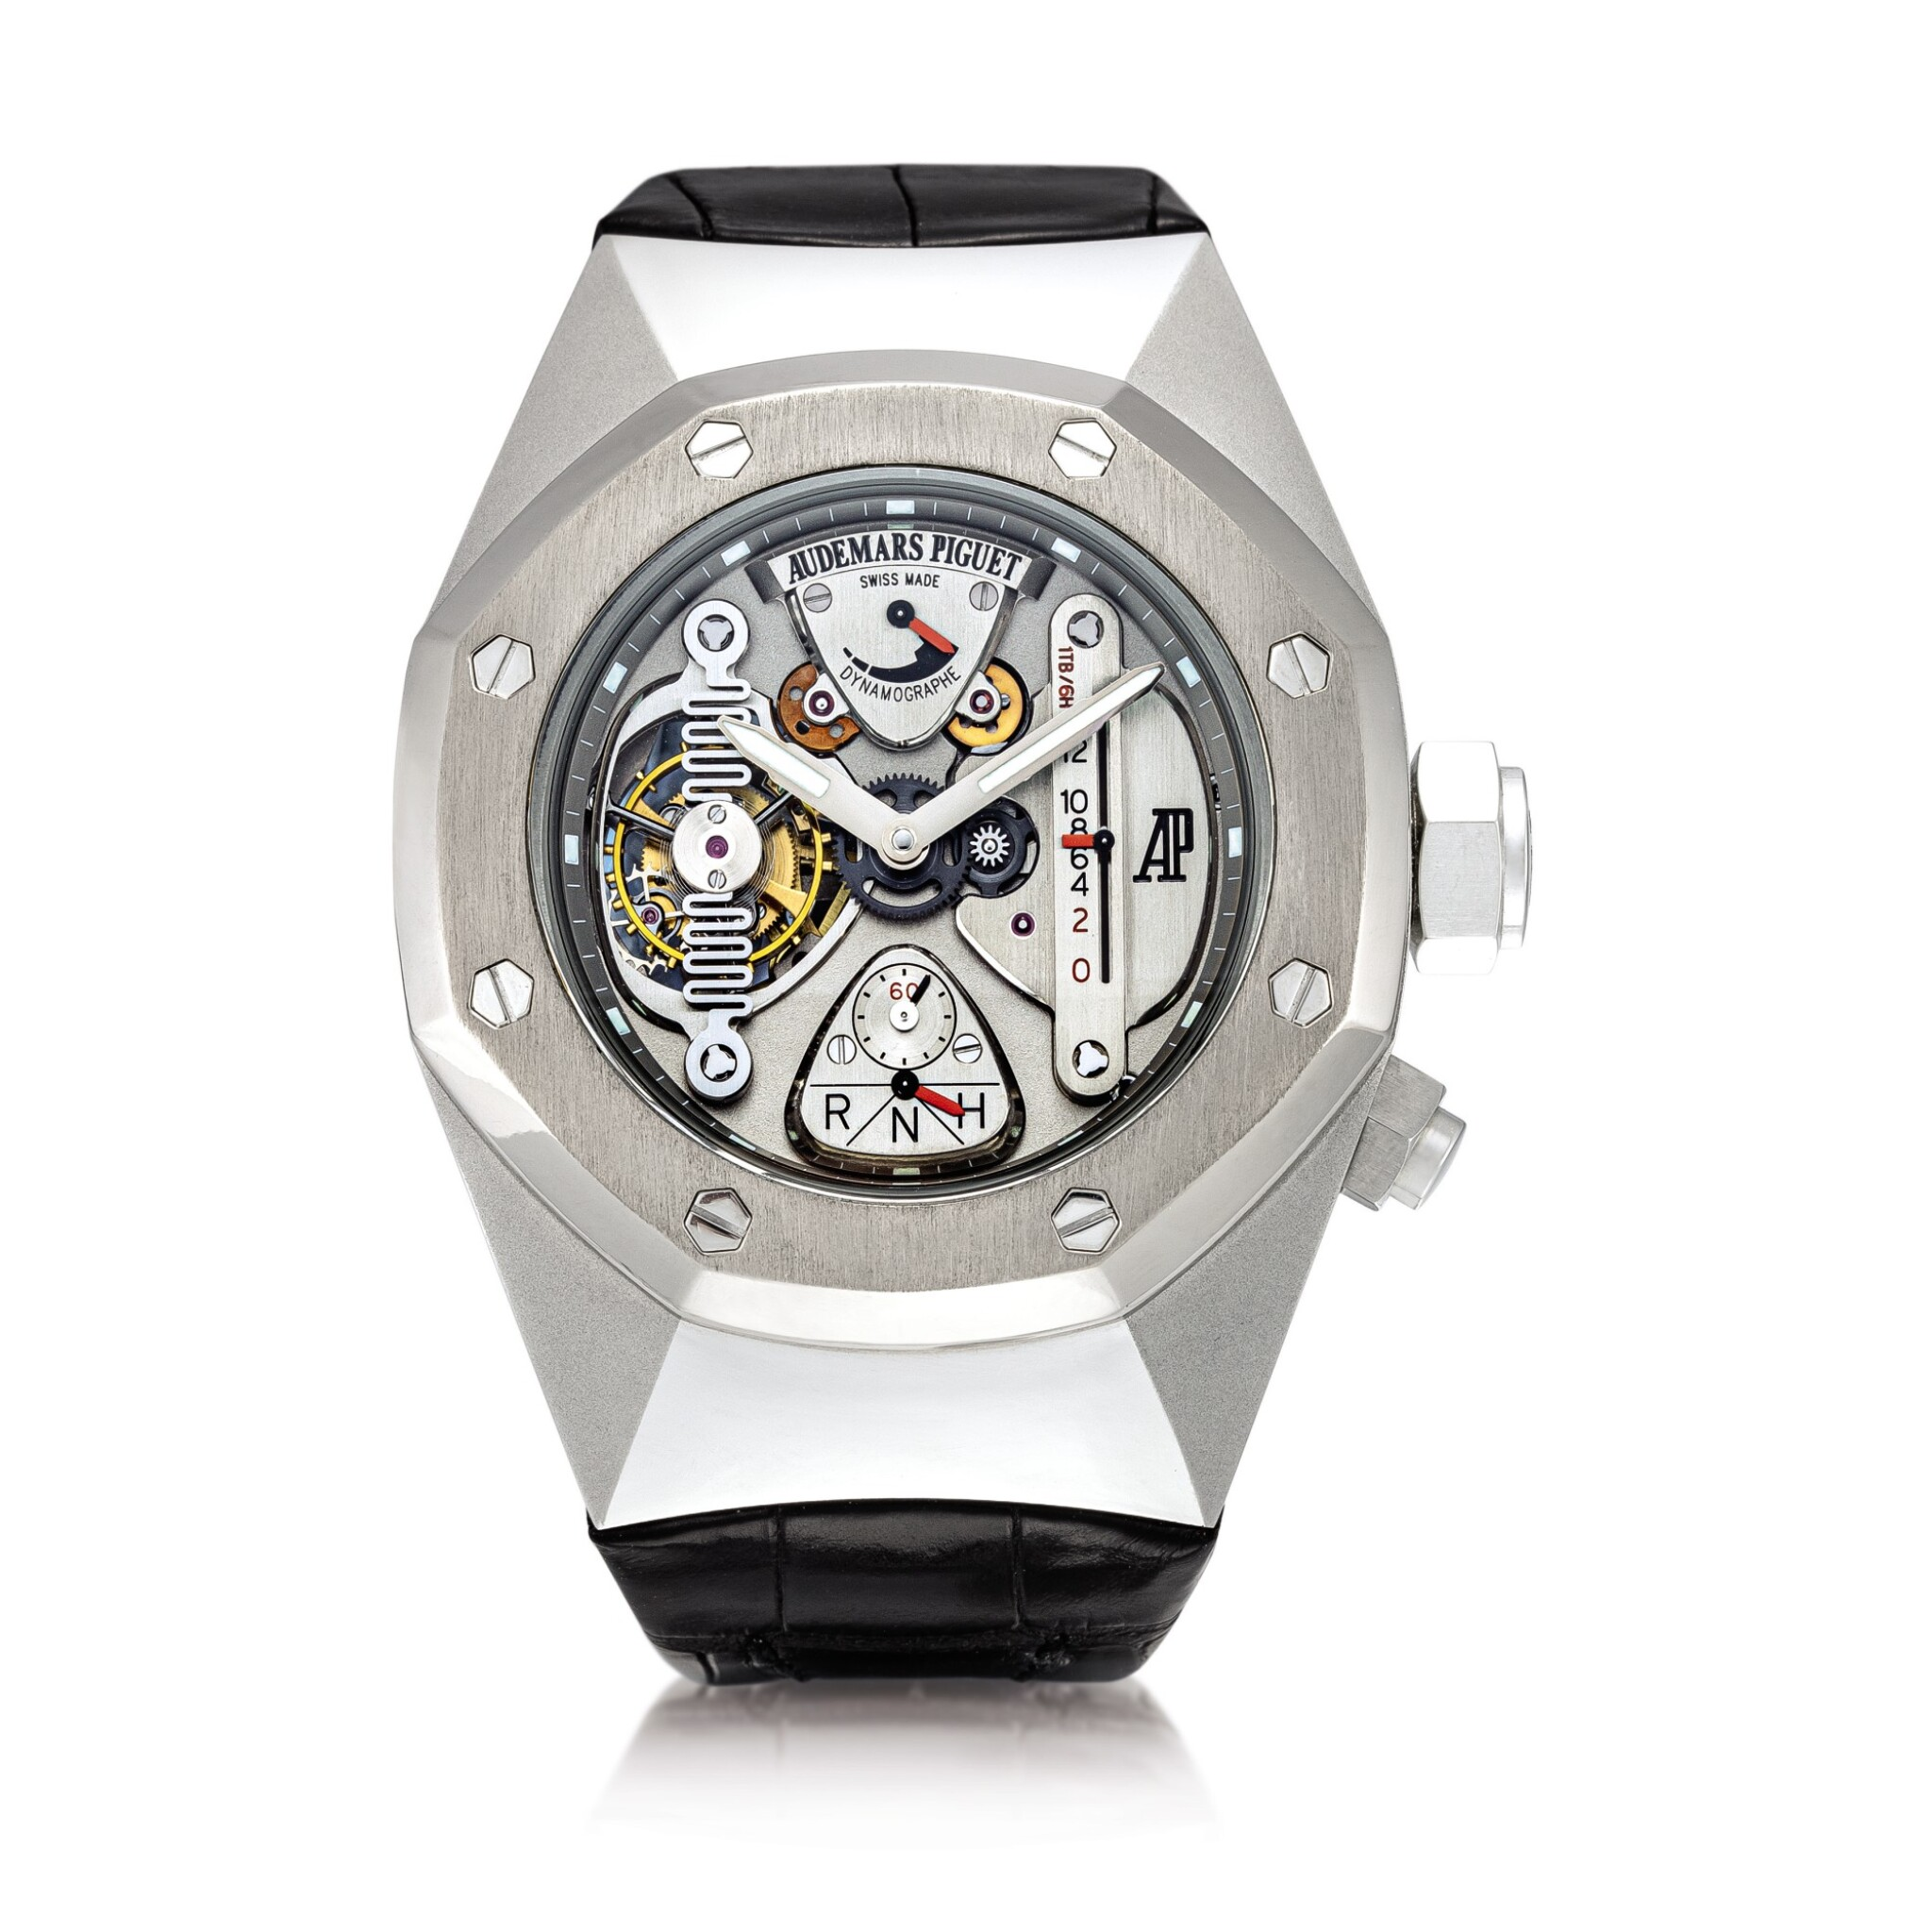 View full screen - View 1 of Lot 2241. Audemars Piguet | Royal Oak Concept, Reference 25980AI.OO.D003SU.01, A limited edition alacrite semi-skeletonised tourbillon wristwatch with dynamographe and power reserve indication, Circa 2005 | 愛彼 | 皇家橡樹概念系列 型號25980AI.OO.D003SU.01  限量版 alacrite 合金半鏤空陀飛輪腕錶,備扭矩力及動力儲備顯示,約2005年製.